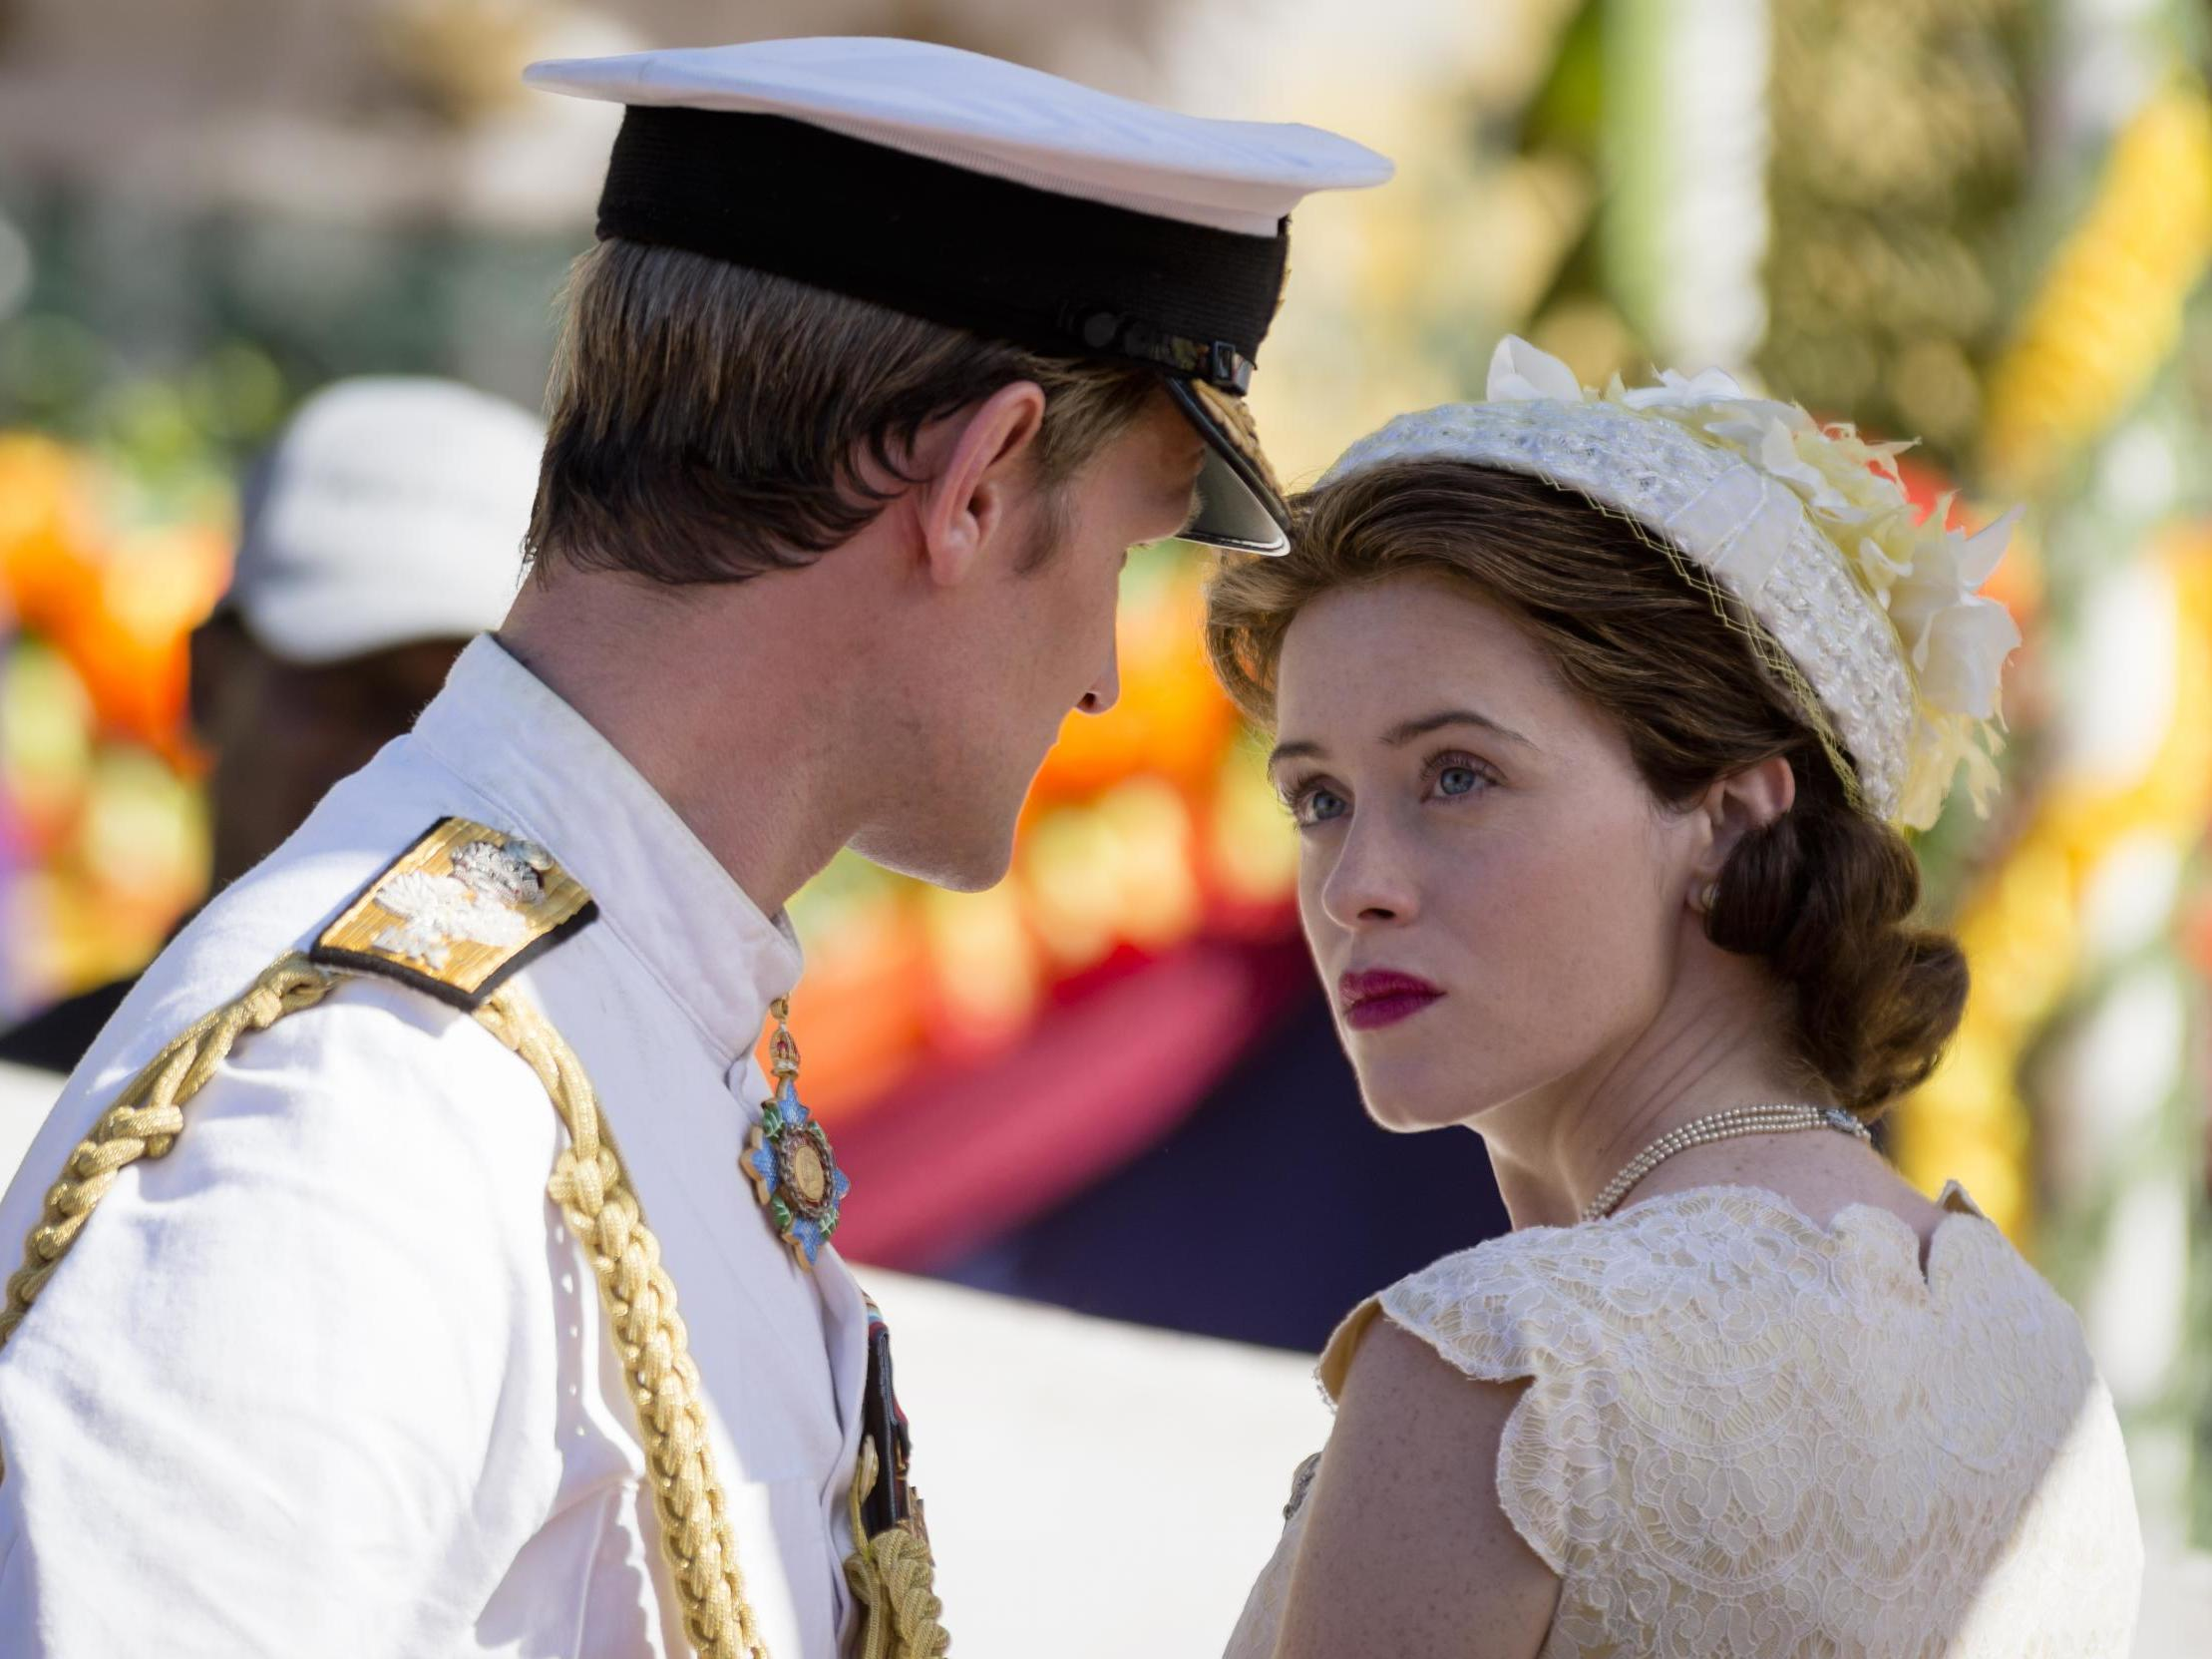 The Crown episode Queen Elizabeth was 'annoyed' by | The